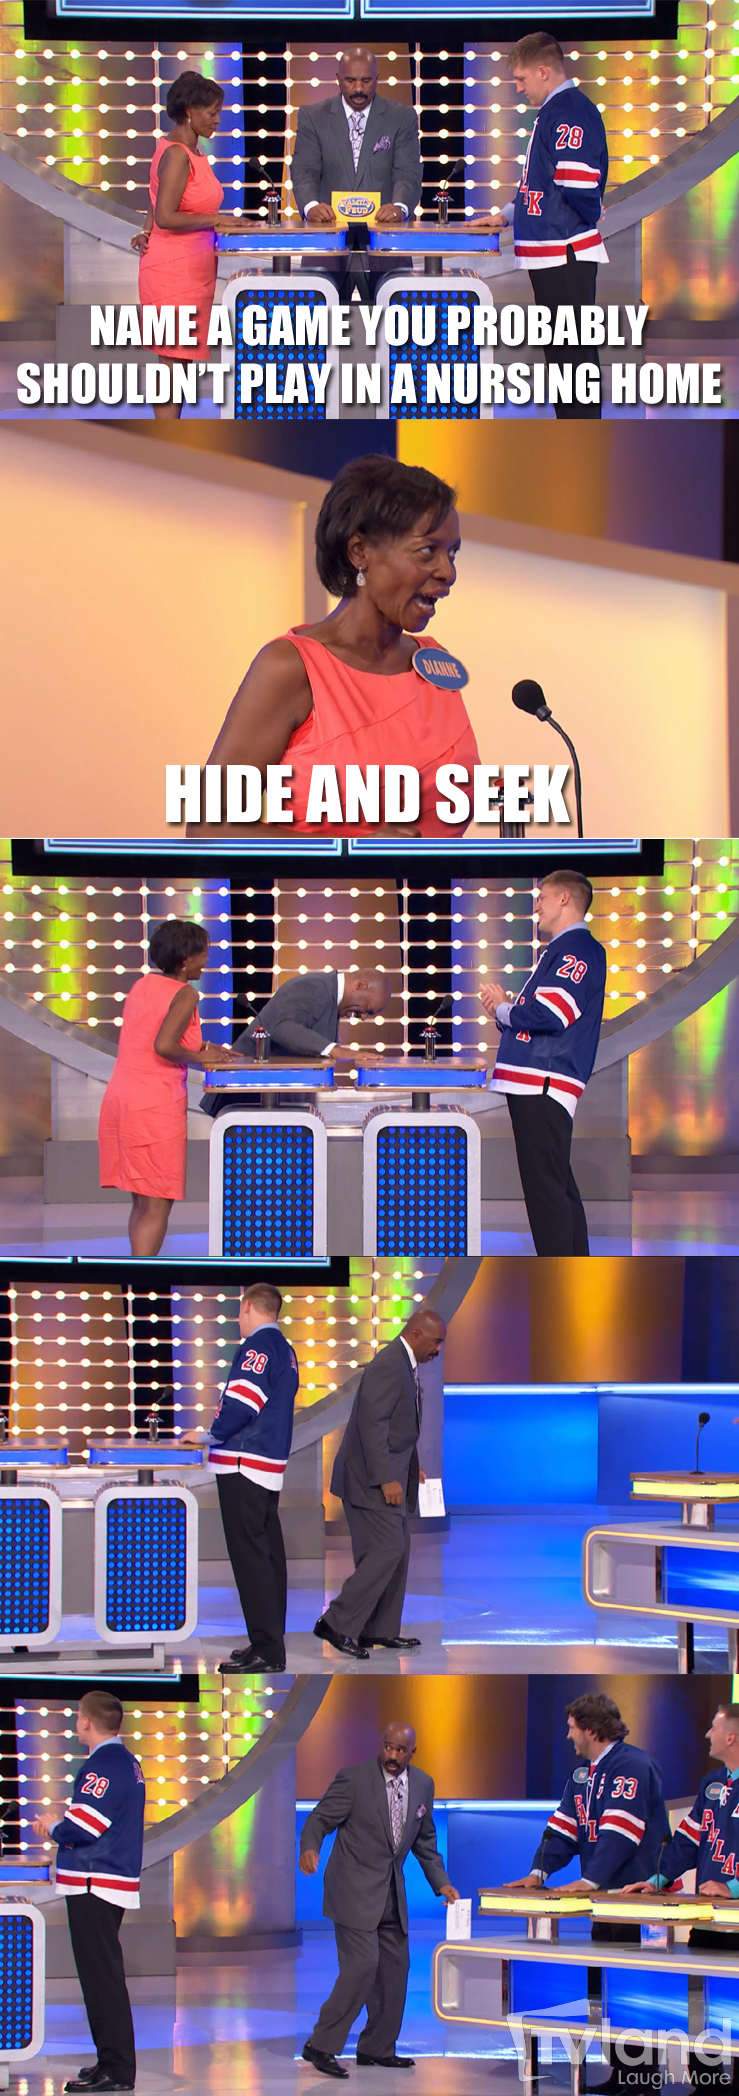 Steve Harvey manages to make the perfect answers even